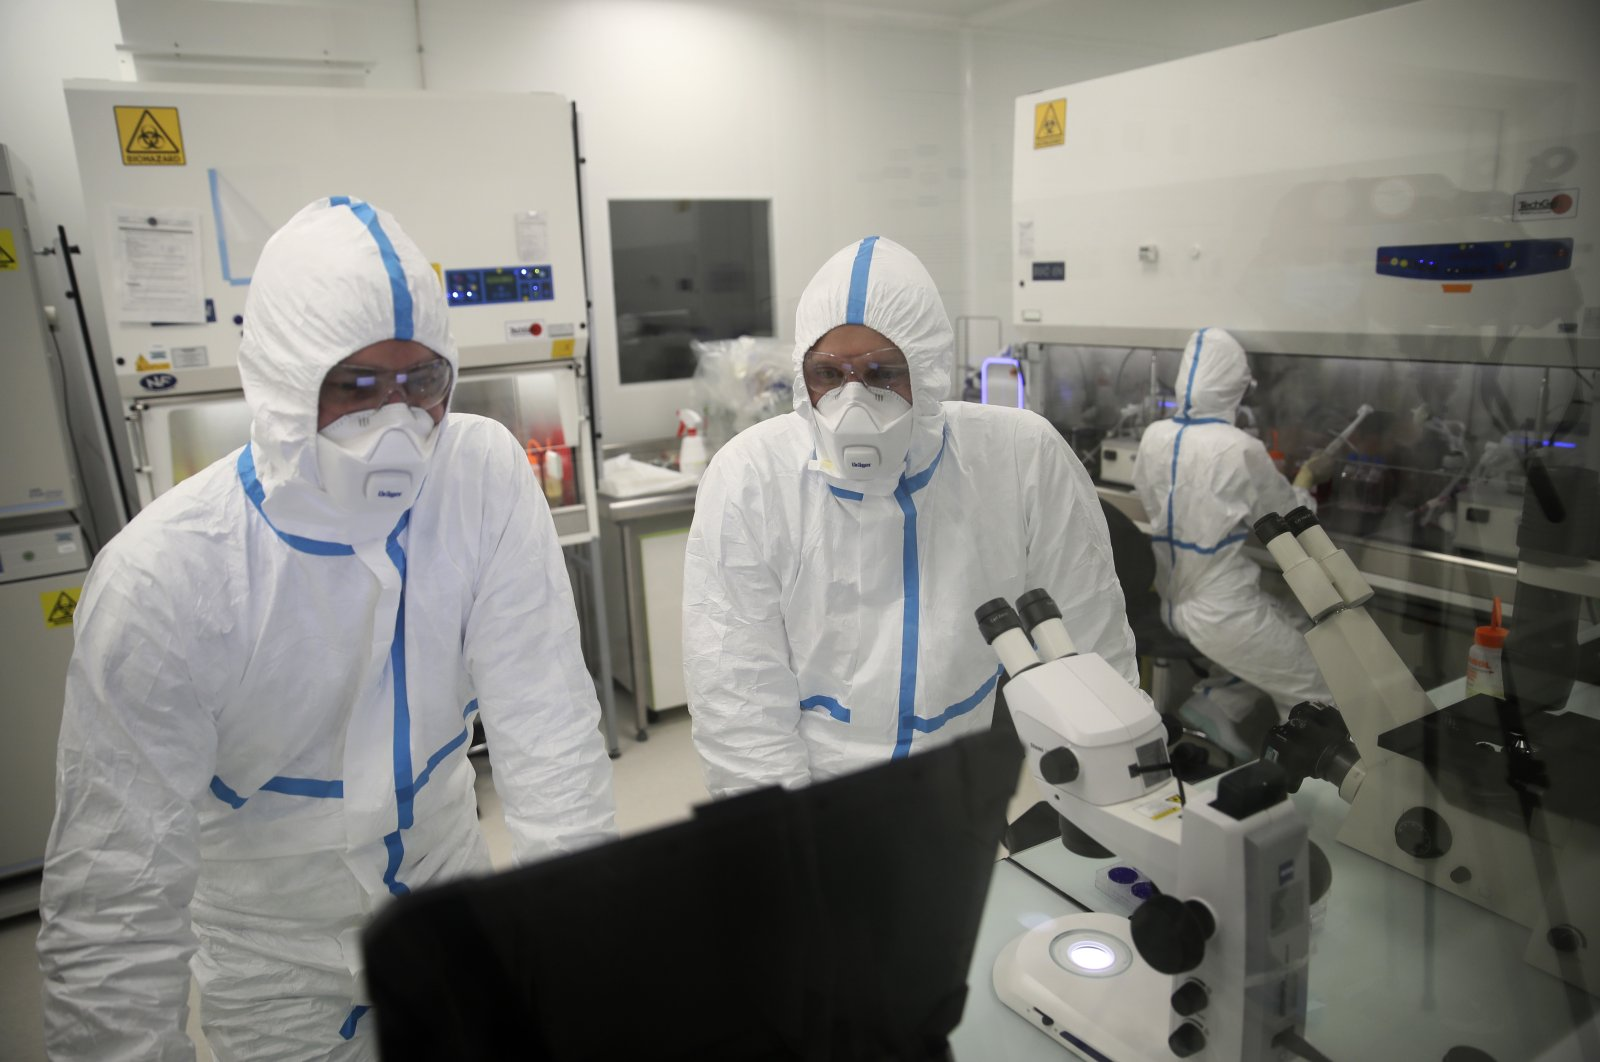 Laboratory technicians work at Valneva headquarters in Saint-Herblain, western France, Feb. 3, 2021. (AP Photo)